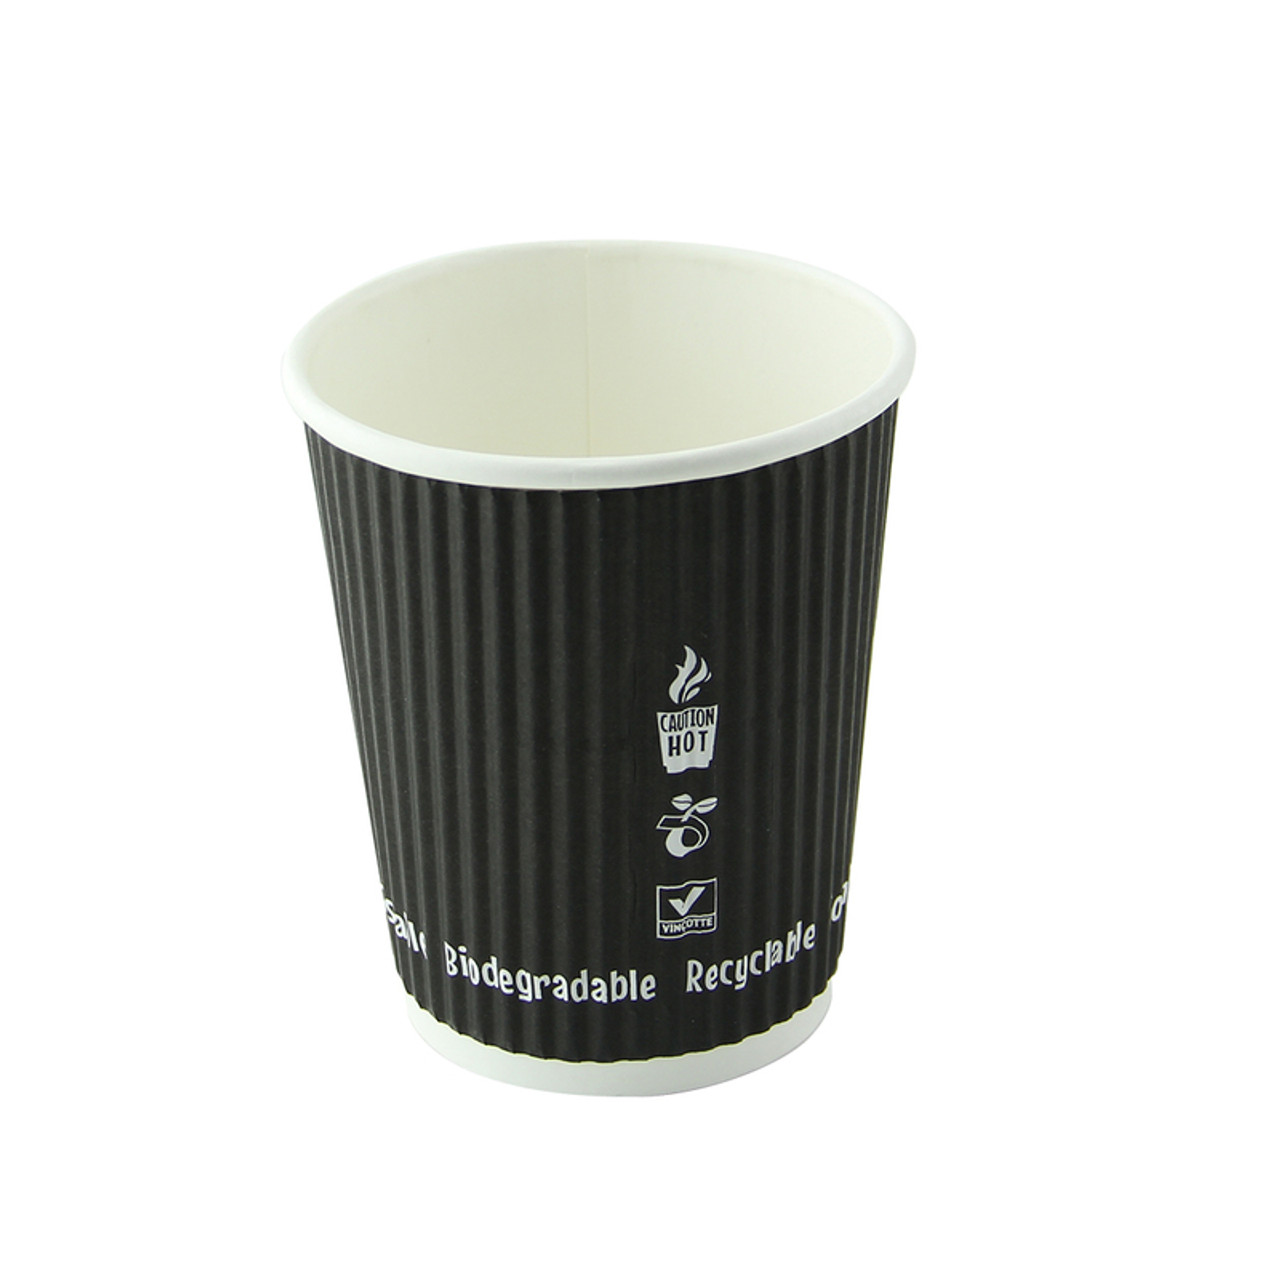 Compostable Rippled Black Cup -8oz Dia:3.1in H:3.6in